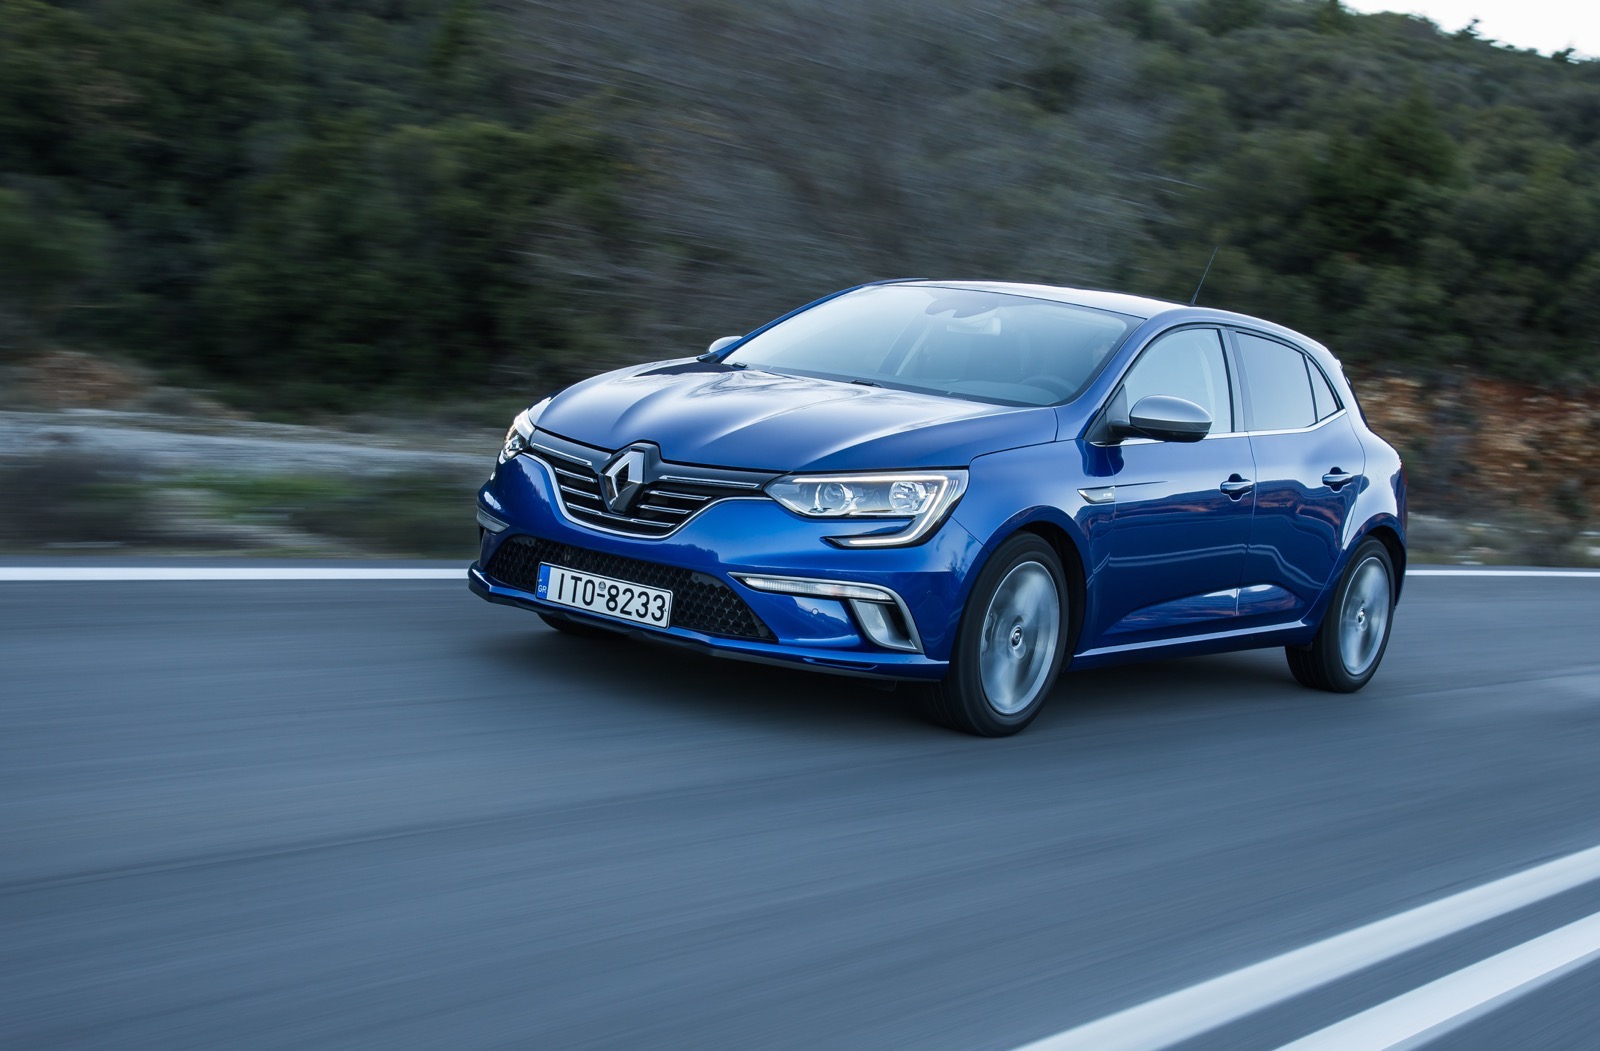 First_Drive_Renault_Megane_81